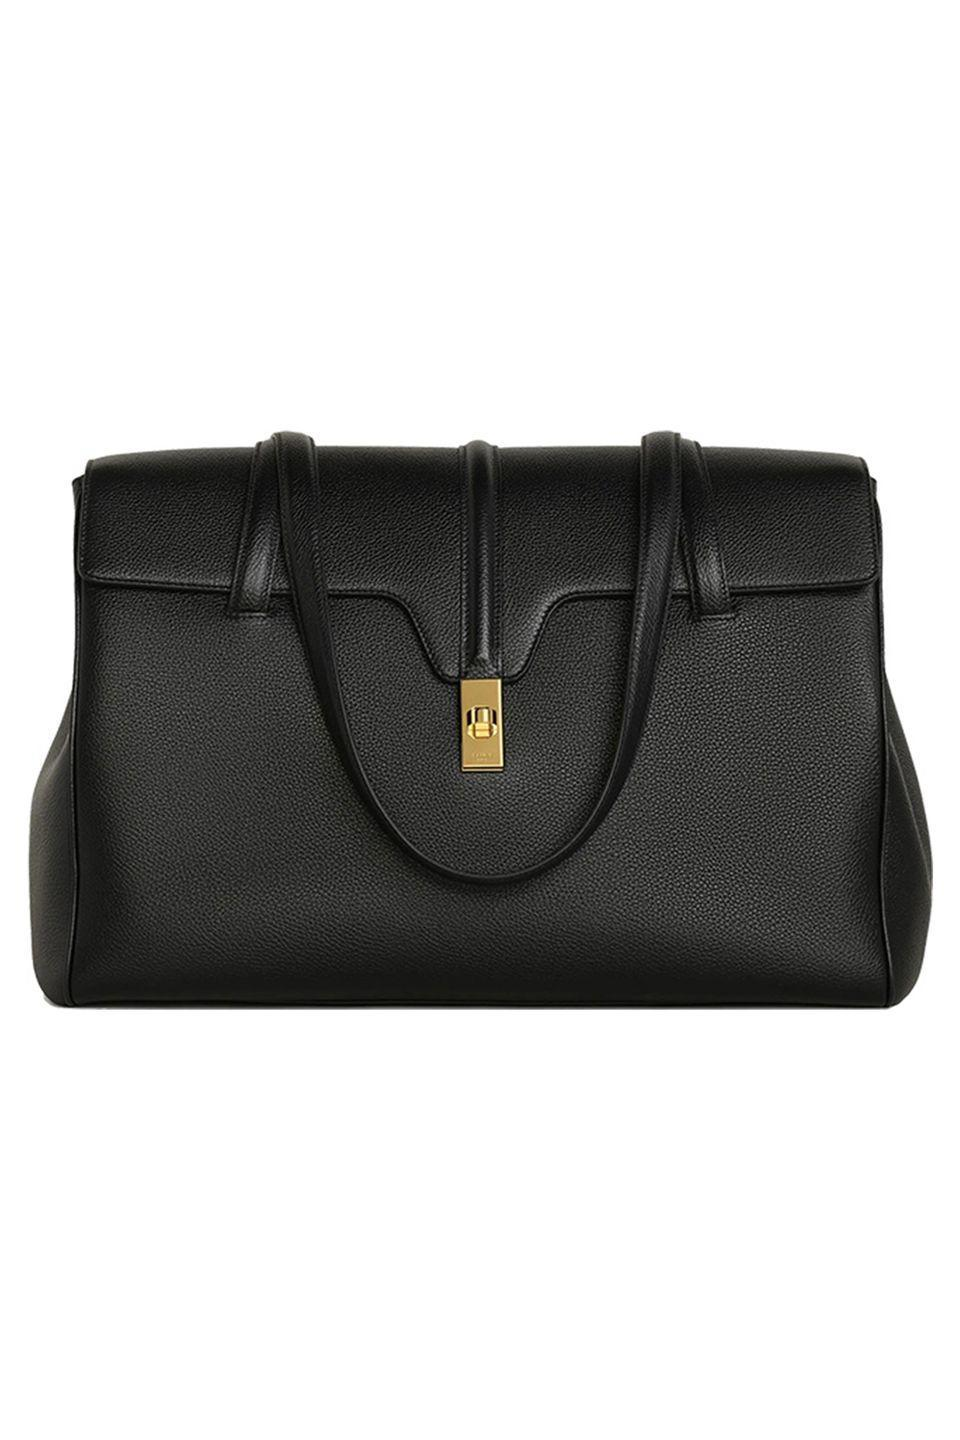 "<p>We might not be heading back to the office anytime soon, but you can still be all business with Celine's newest satchel. The recently launched bag is a complement to the '16' series first created by Hedi Slimane, his first handbag for the brand in 2018. This softer style, made of supple calfskin leather, is a new closet staple. </p><p><em>Celine, $2,650; celine.com</em></p><p><a class=""link rapid-noclick-resp"" href=""https://www.celine.com/en-us/celine-shop-women/bags/new/large-soft-16-bag-in-supple-grained-calfskin-194043CR8.38NO.html"" rel=""nofollow noopener"" target=""_blank"" data-ylk=""slk:SHOP NOW"">SHOP NOW</a></p>"